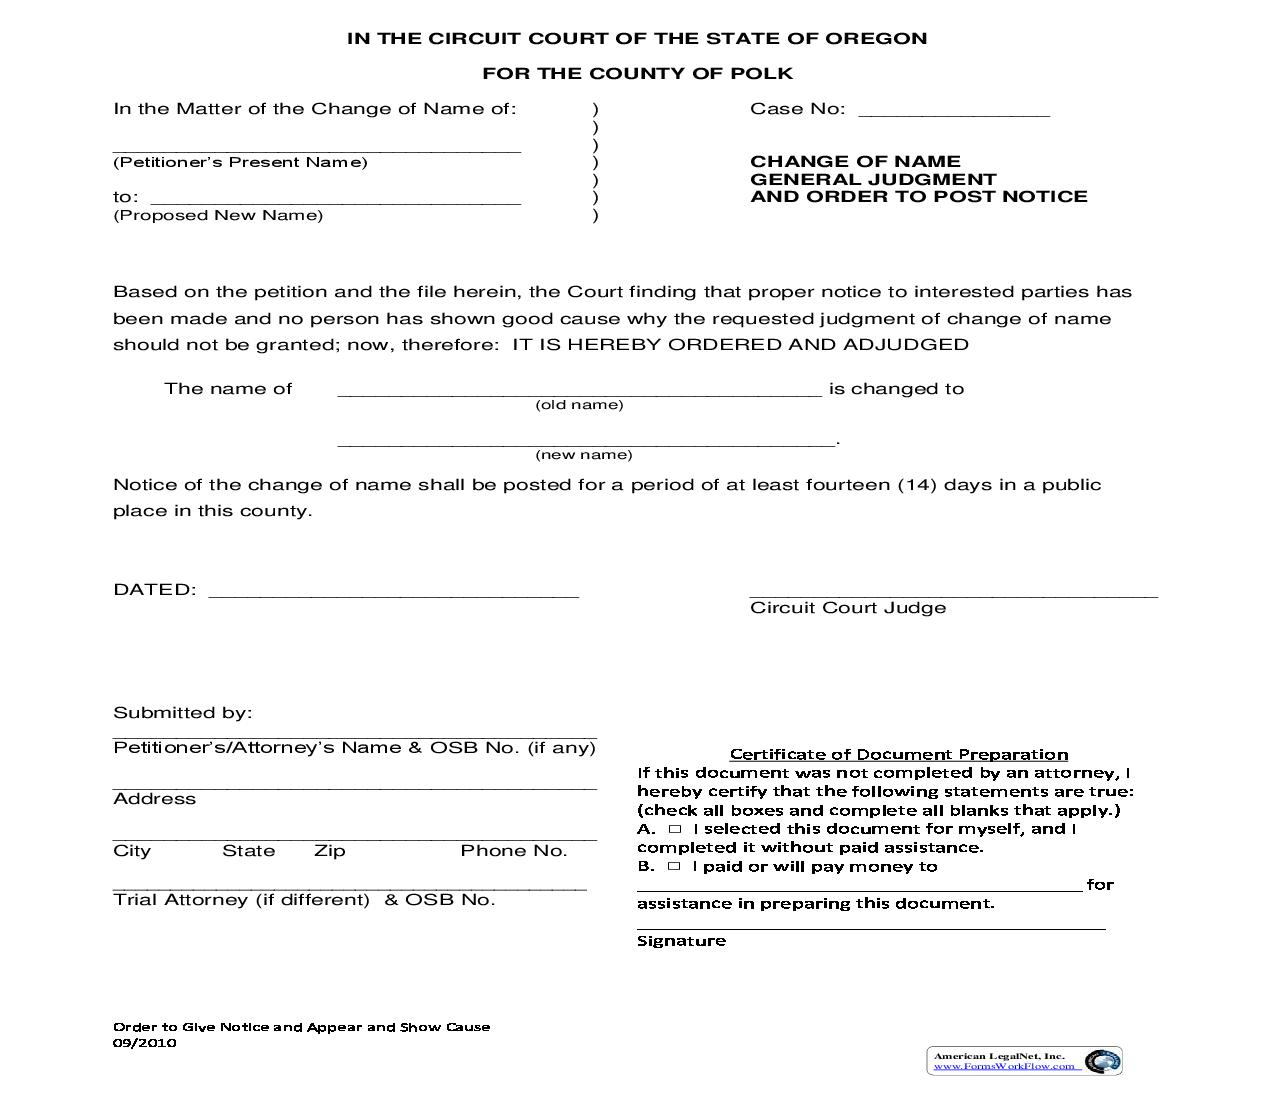 Change Of Name General Judgment And Order To Post Notice | Pdf Fpdf Doc Docx | Oregon